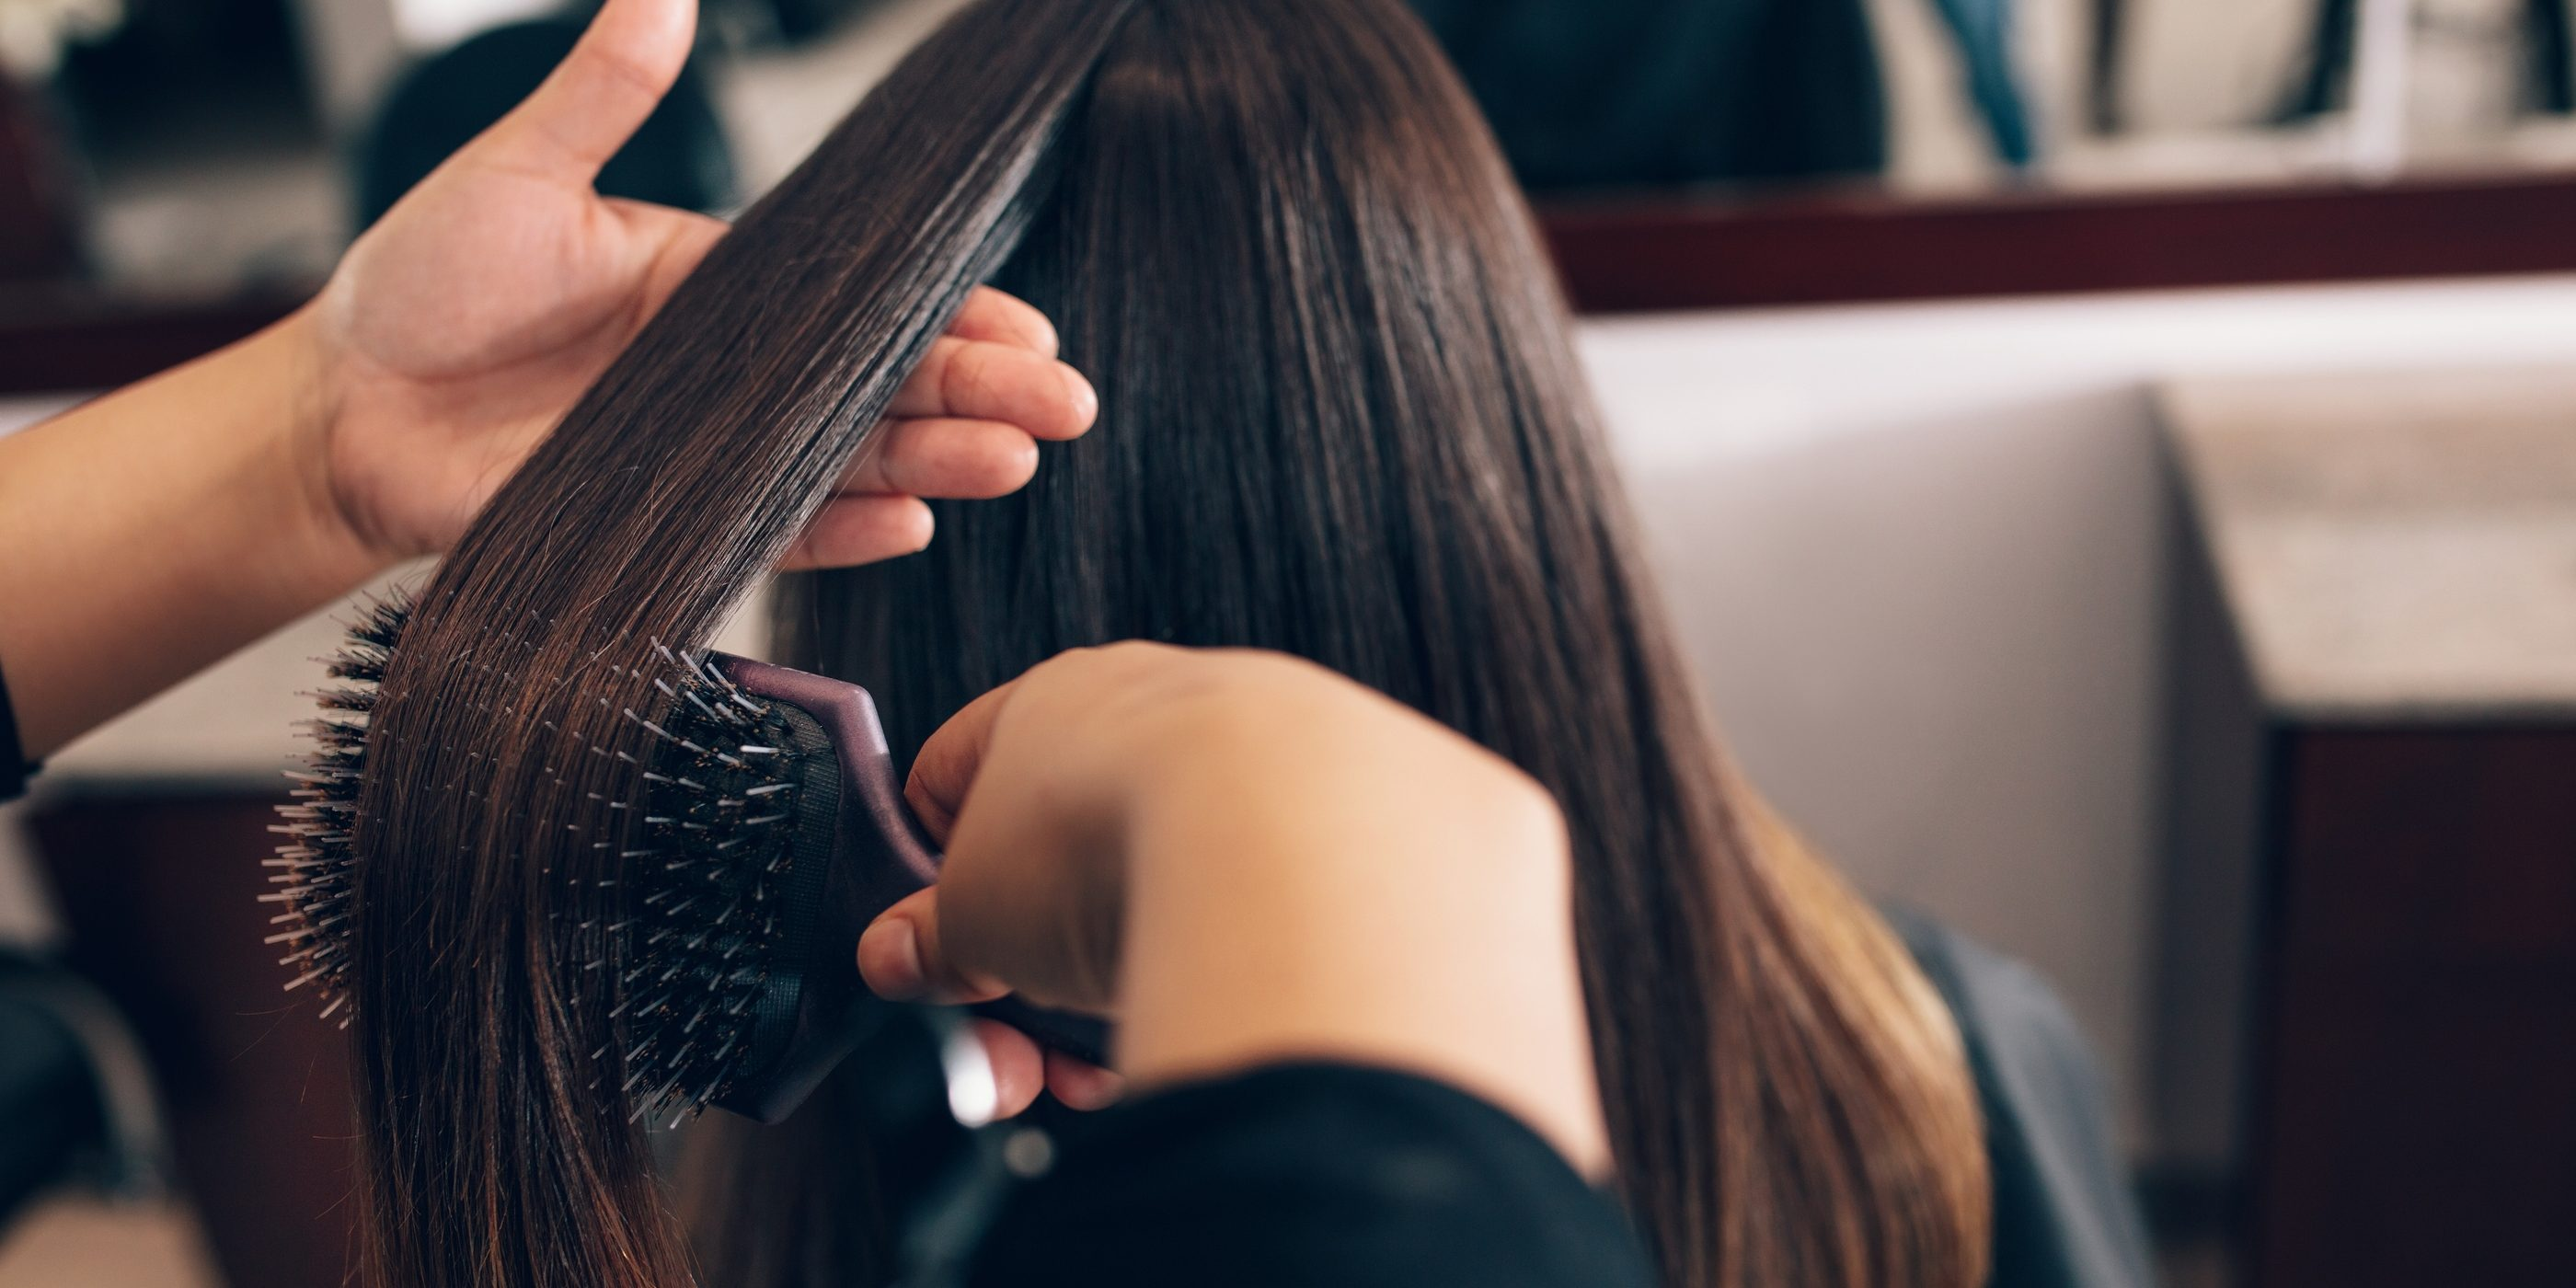 Professional hairdresser styling the hair of a customer at salon. Female hair stylist combing hair using a hair brush.